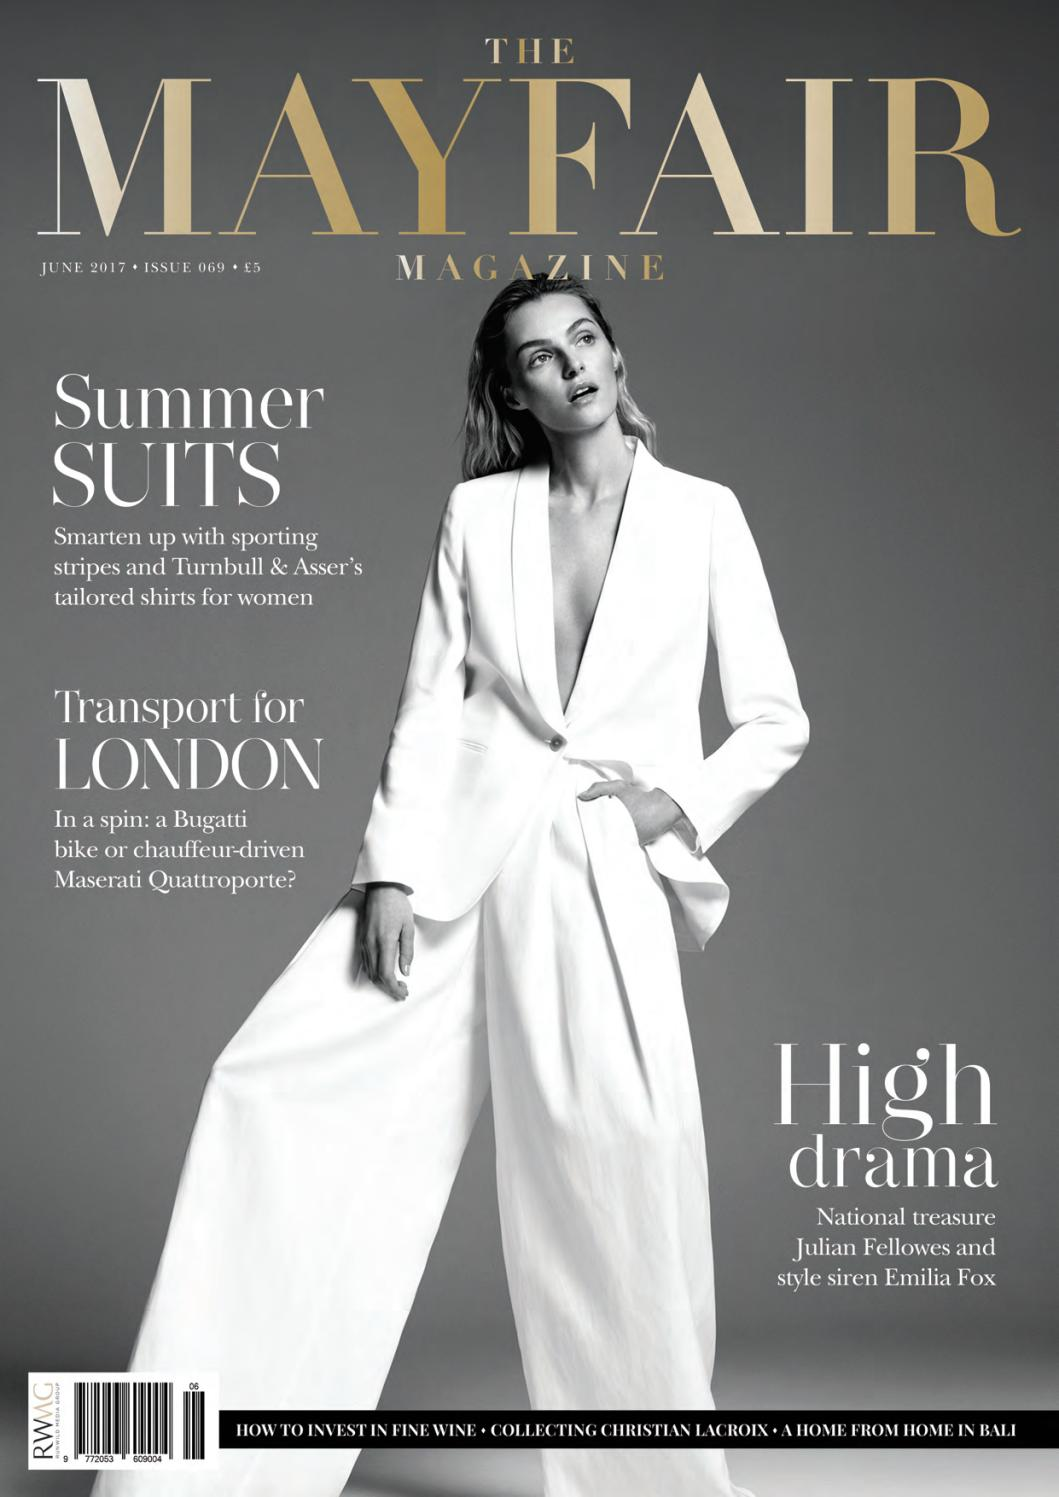 The mayfair magazine june 2017 by runwild media group issuu for The mayfair